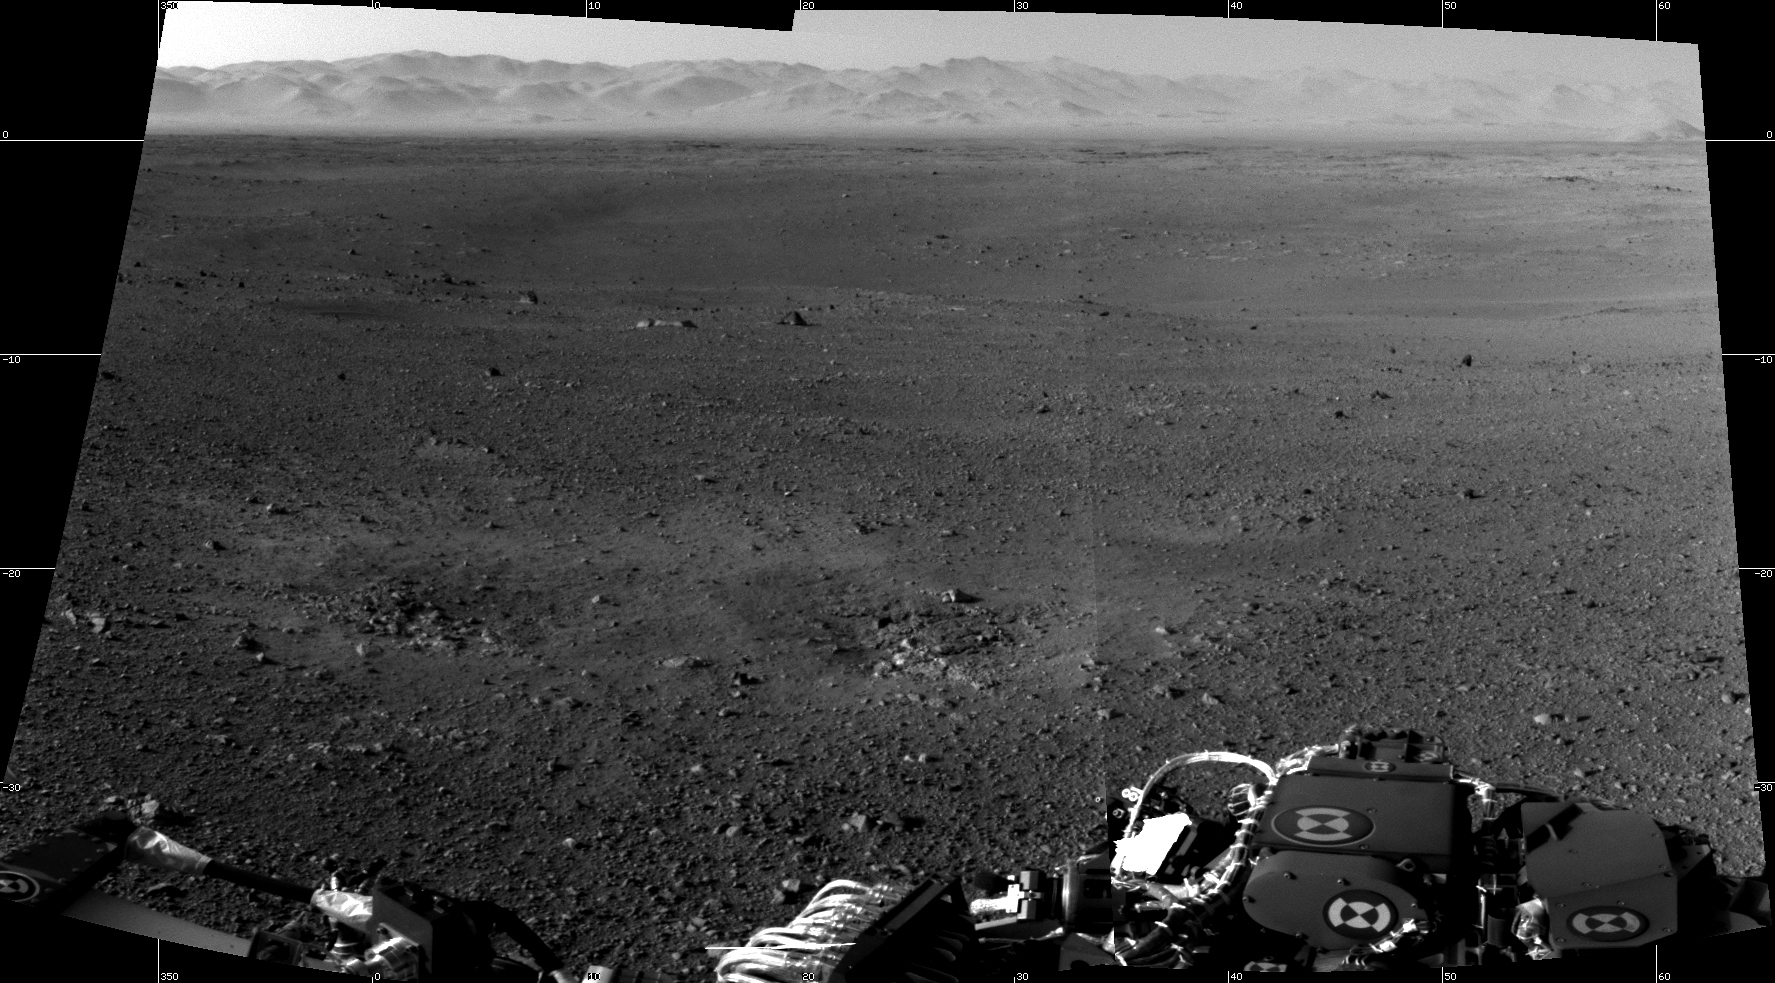 New Mars Rover Photos Reveal 'Earthlike' Landscape